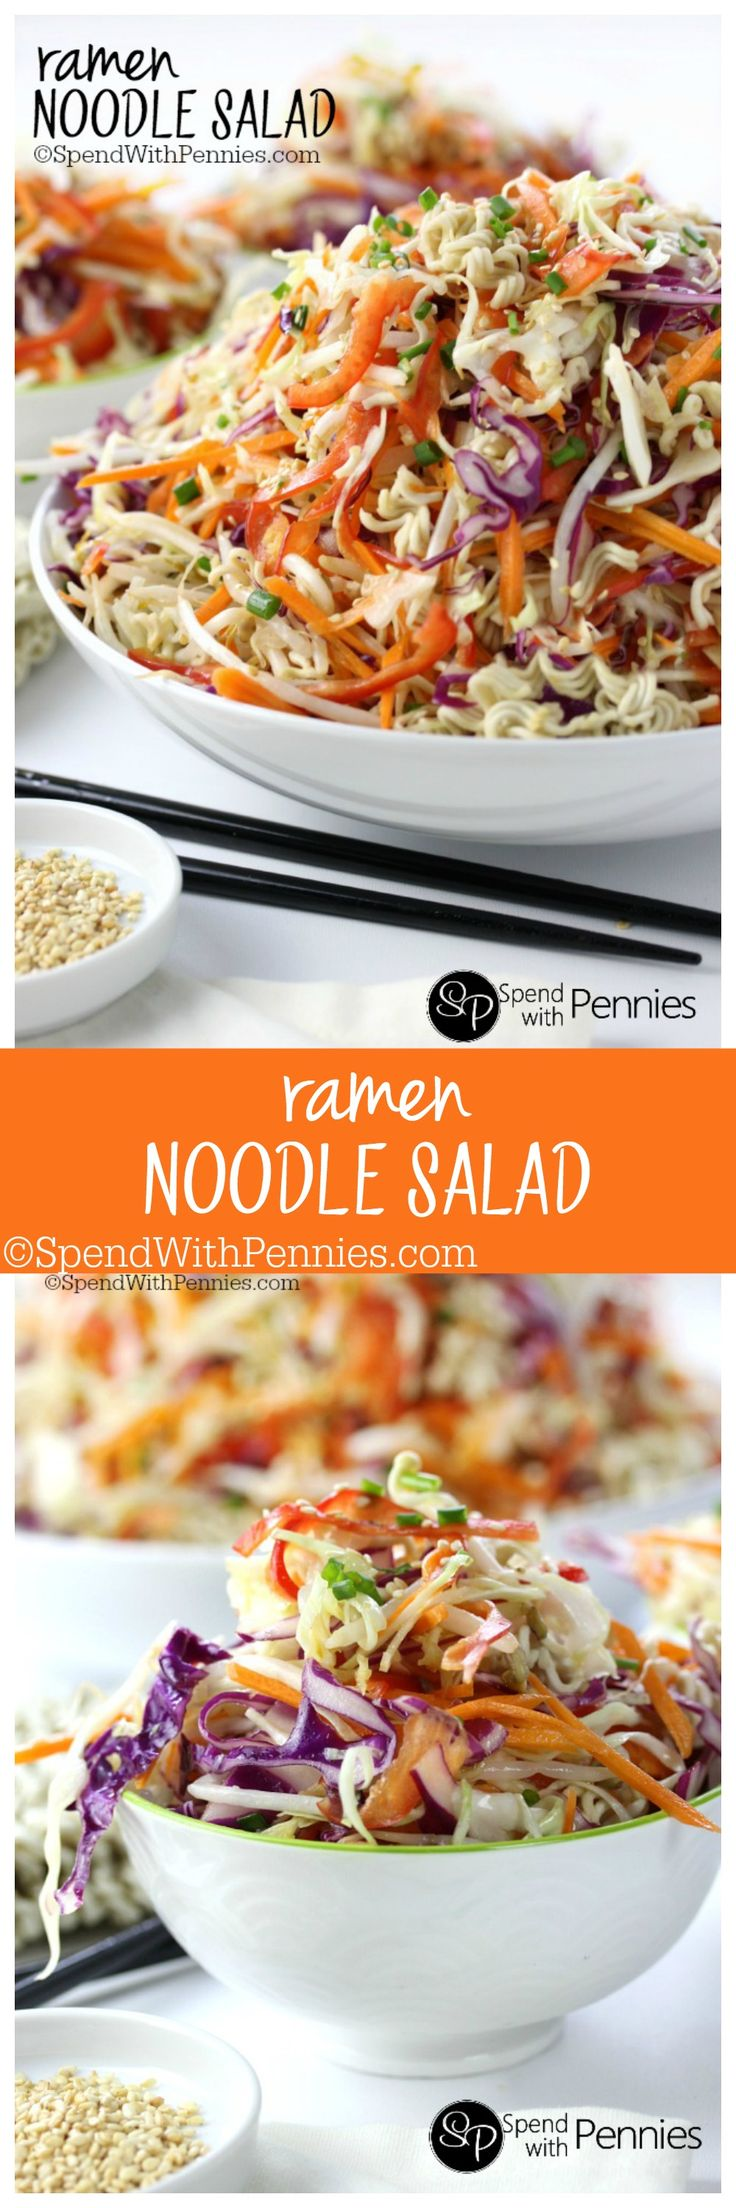 Coleslaw clipart tossed salad Noodles Basic Noodle with Pinterest